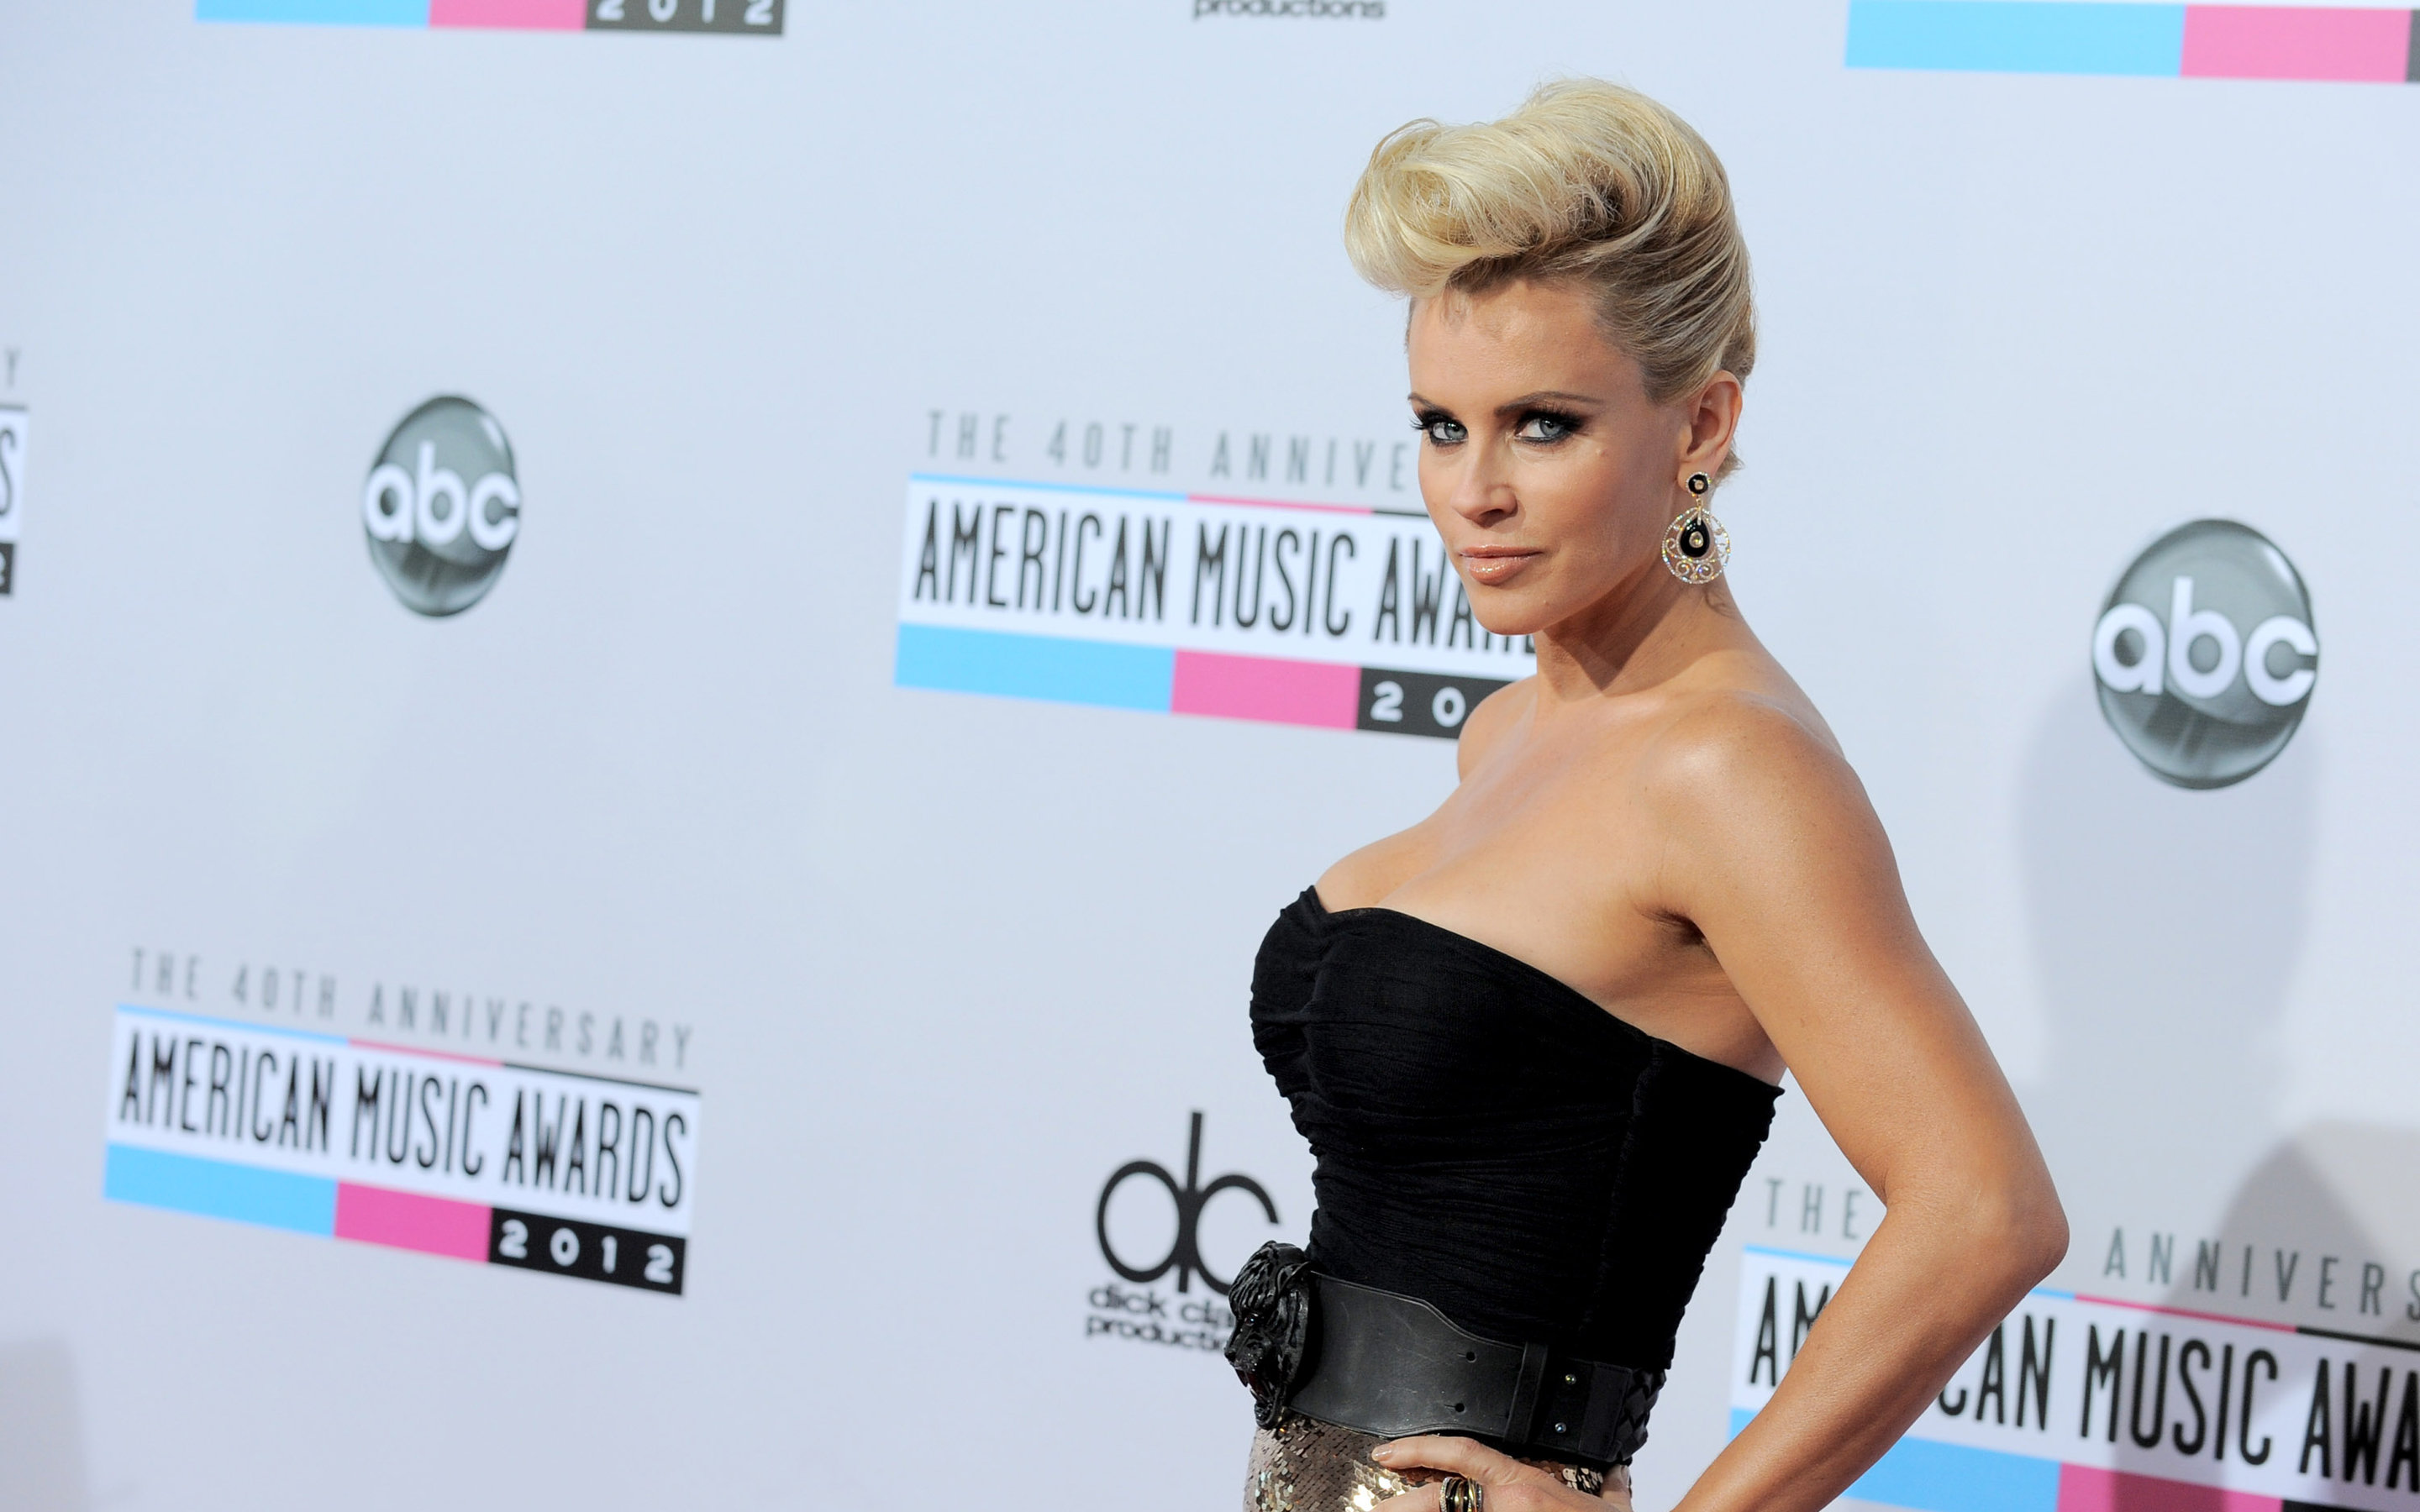 High resolution Jenny Mccarthy hd 2880x1800 wallpaper ID:40478 for computer